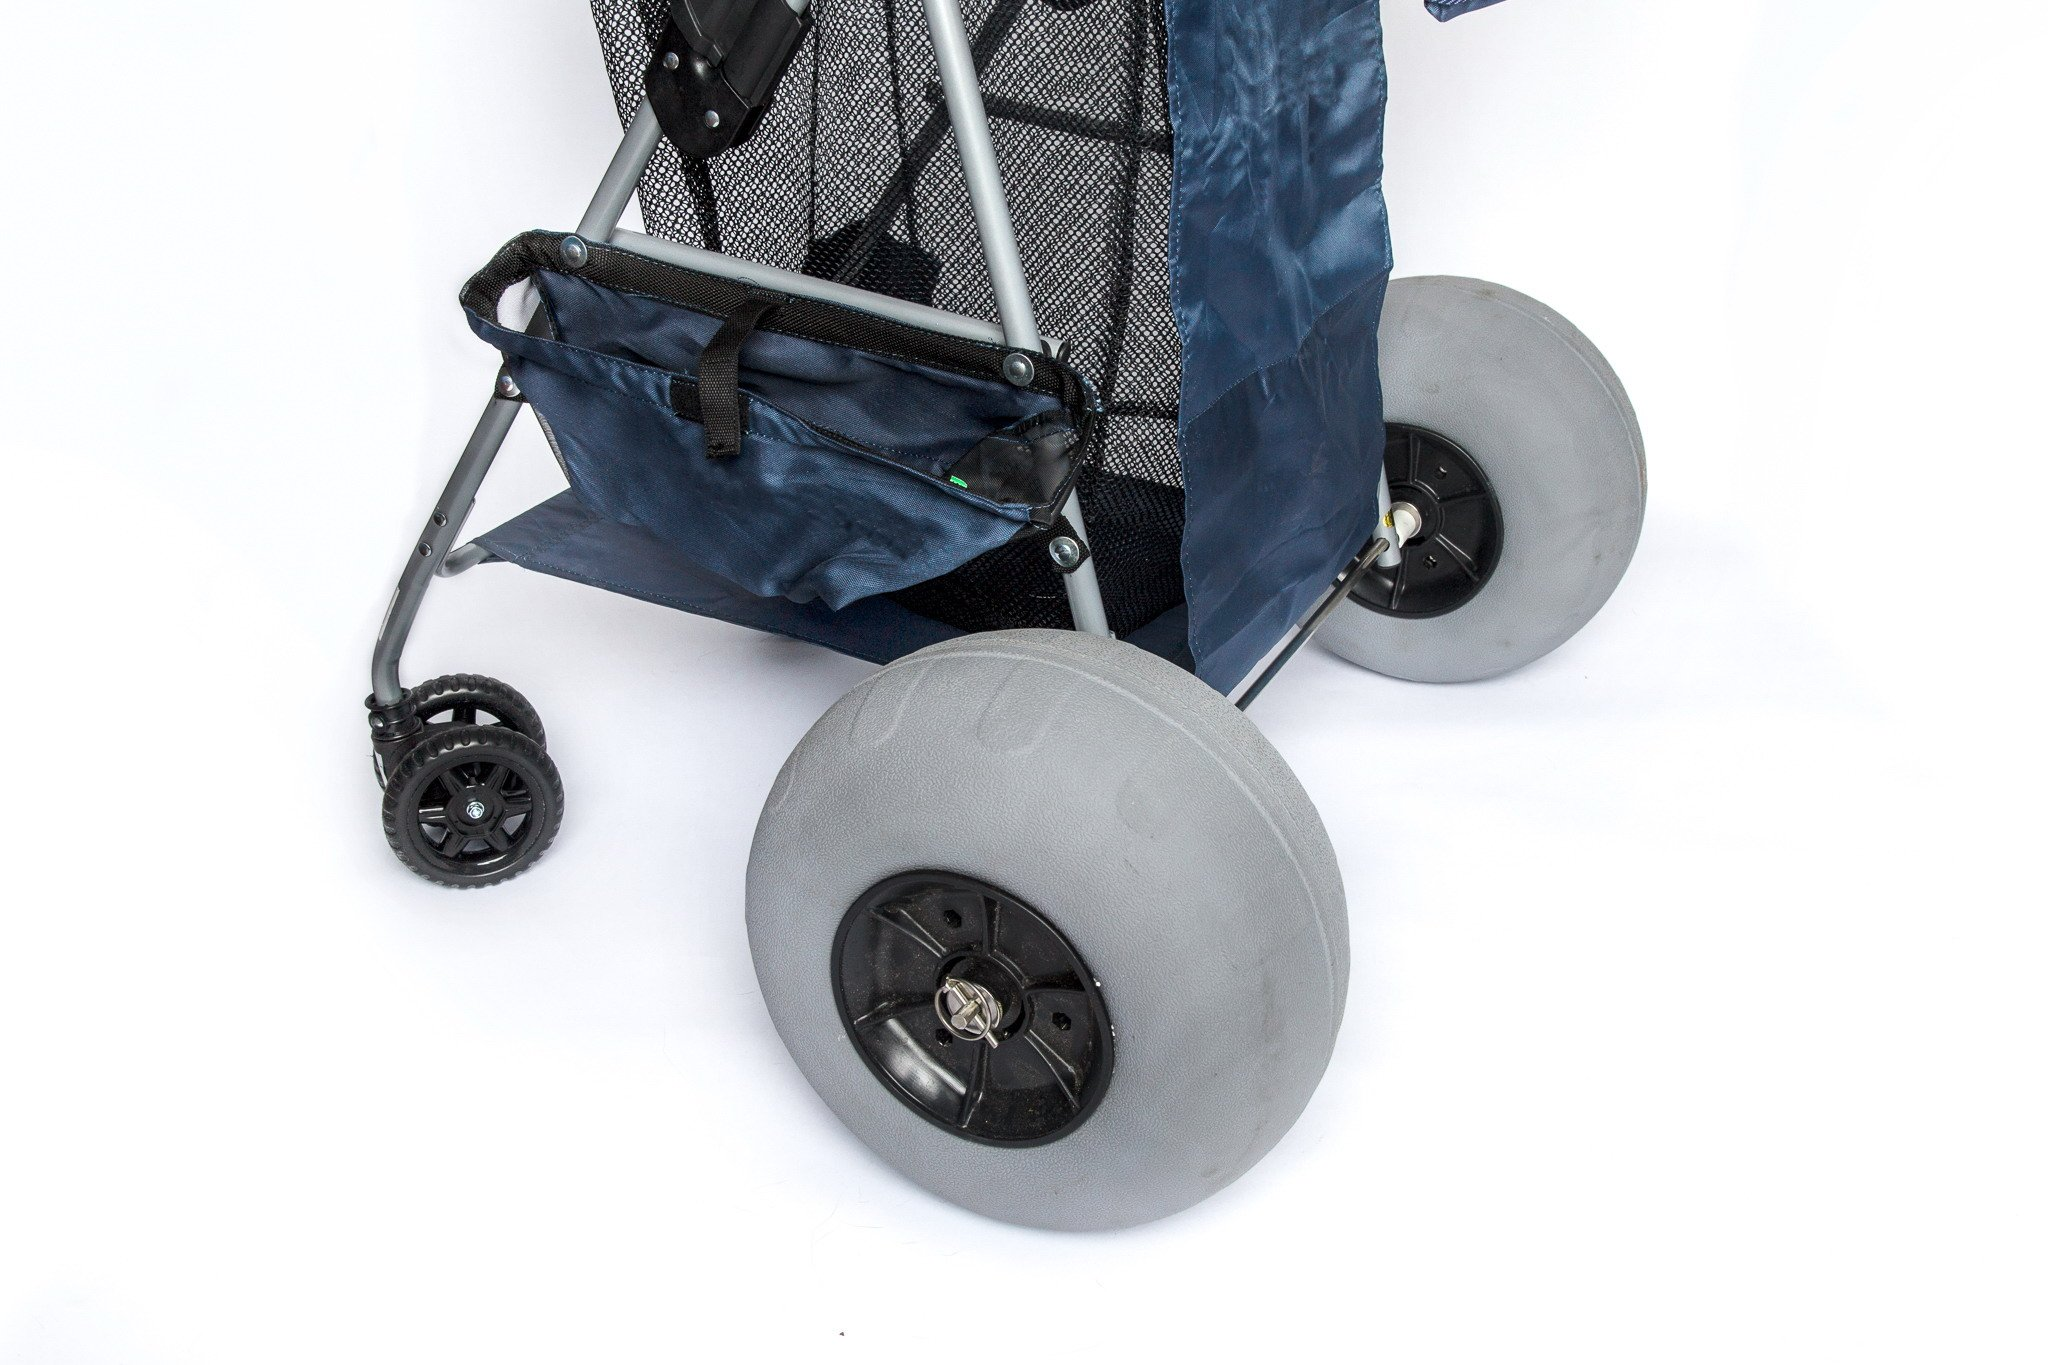 12'' Balloon Wheel Conversion Kit for Big Wheel Beach Carts-Includes Stainless Steel Axle,(2)12'' Balloon/Beach Tires,(4)Bearings, Stainless Steel Axle -Easy Install,No Drilling/Tools Required.